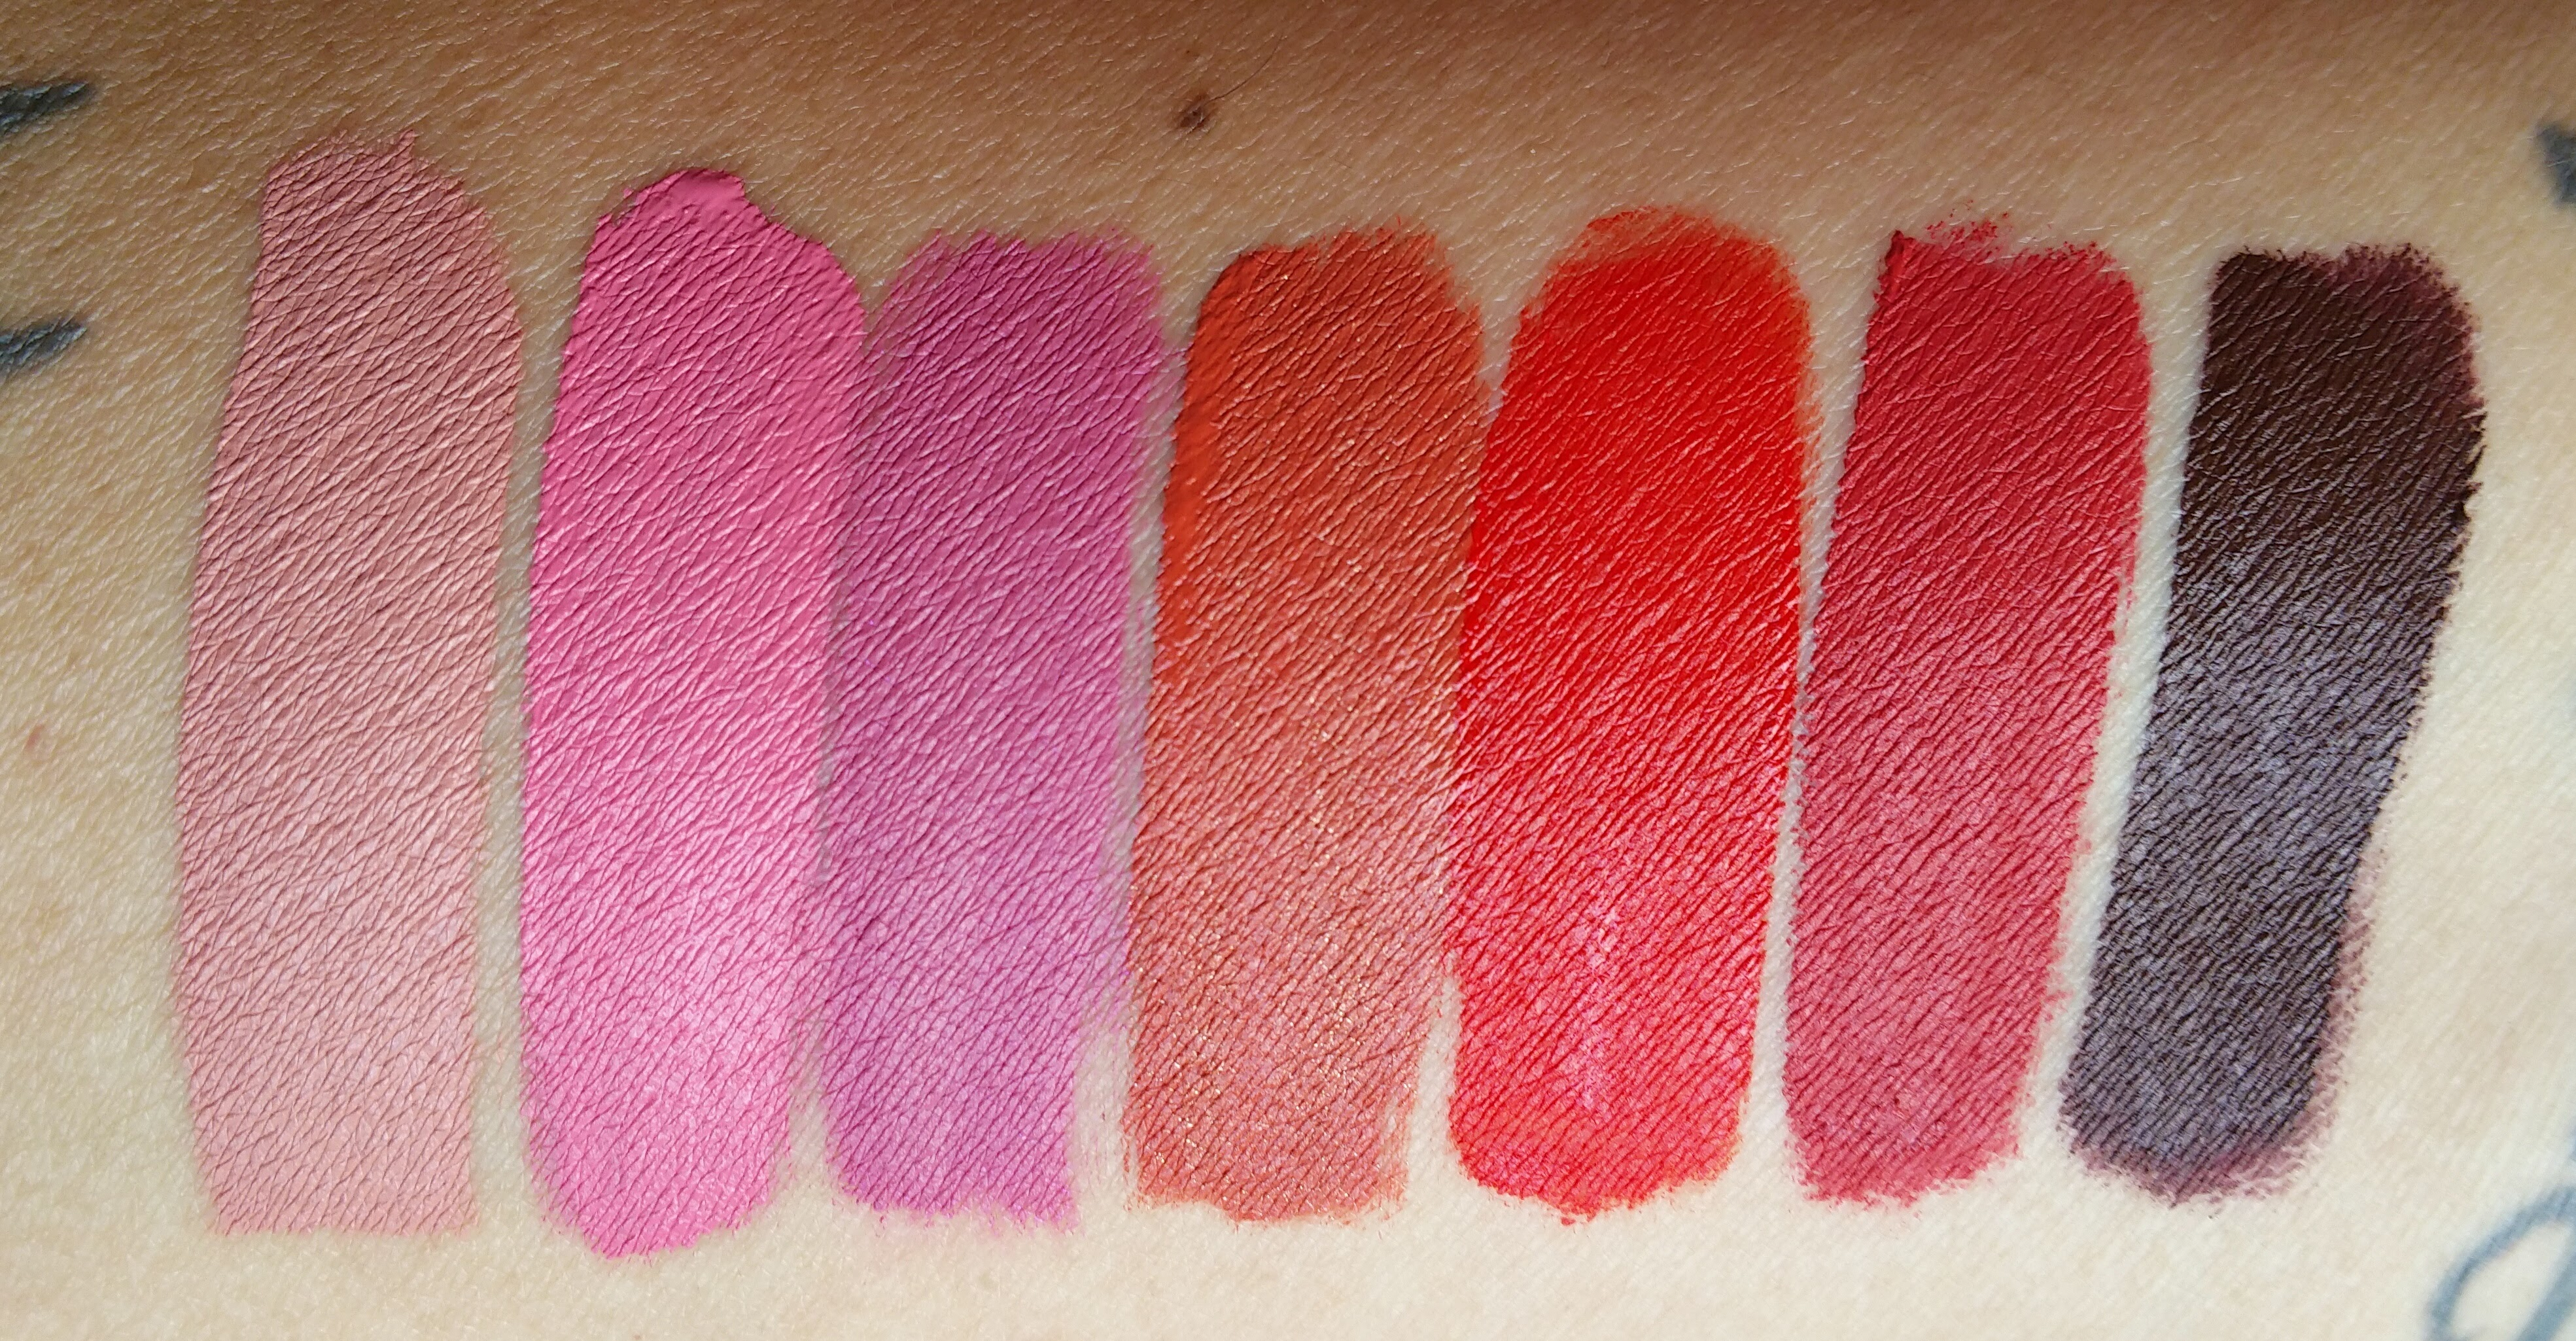 bhue beauty, bhue, liquid lipsticks, liquid lip creams, lips, lip cream, matte liquid lipstick, matte lipstick, liquid lips, beauty, makeup, lip swatches, lipstick, makeup, beauty,